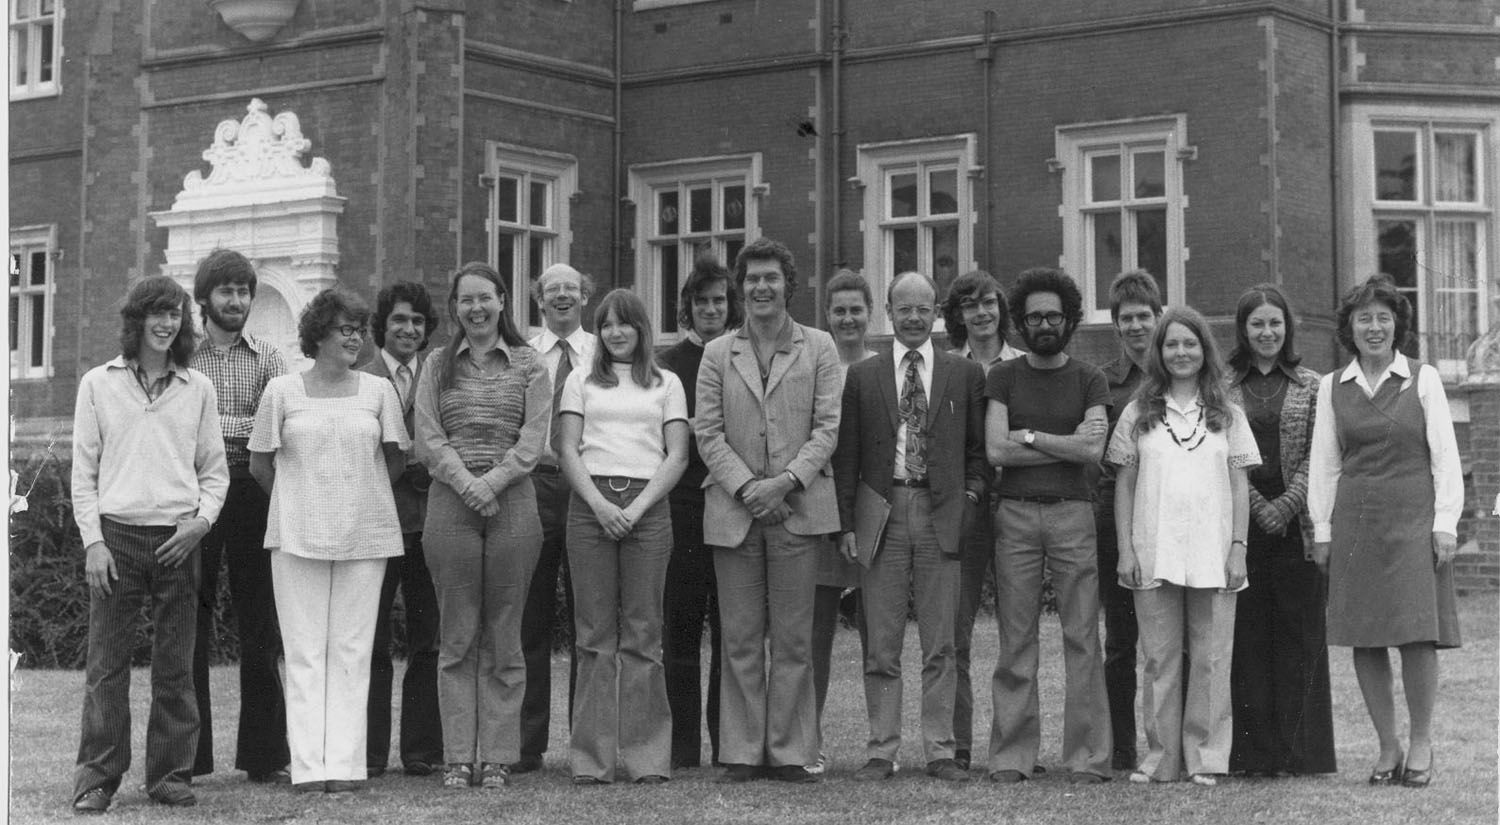 Biology staff in front Wivenhoe House during late 1960s